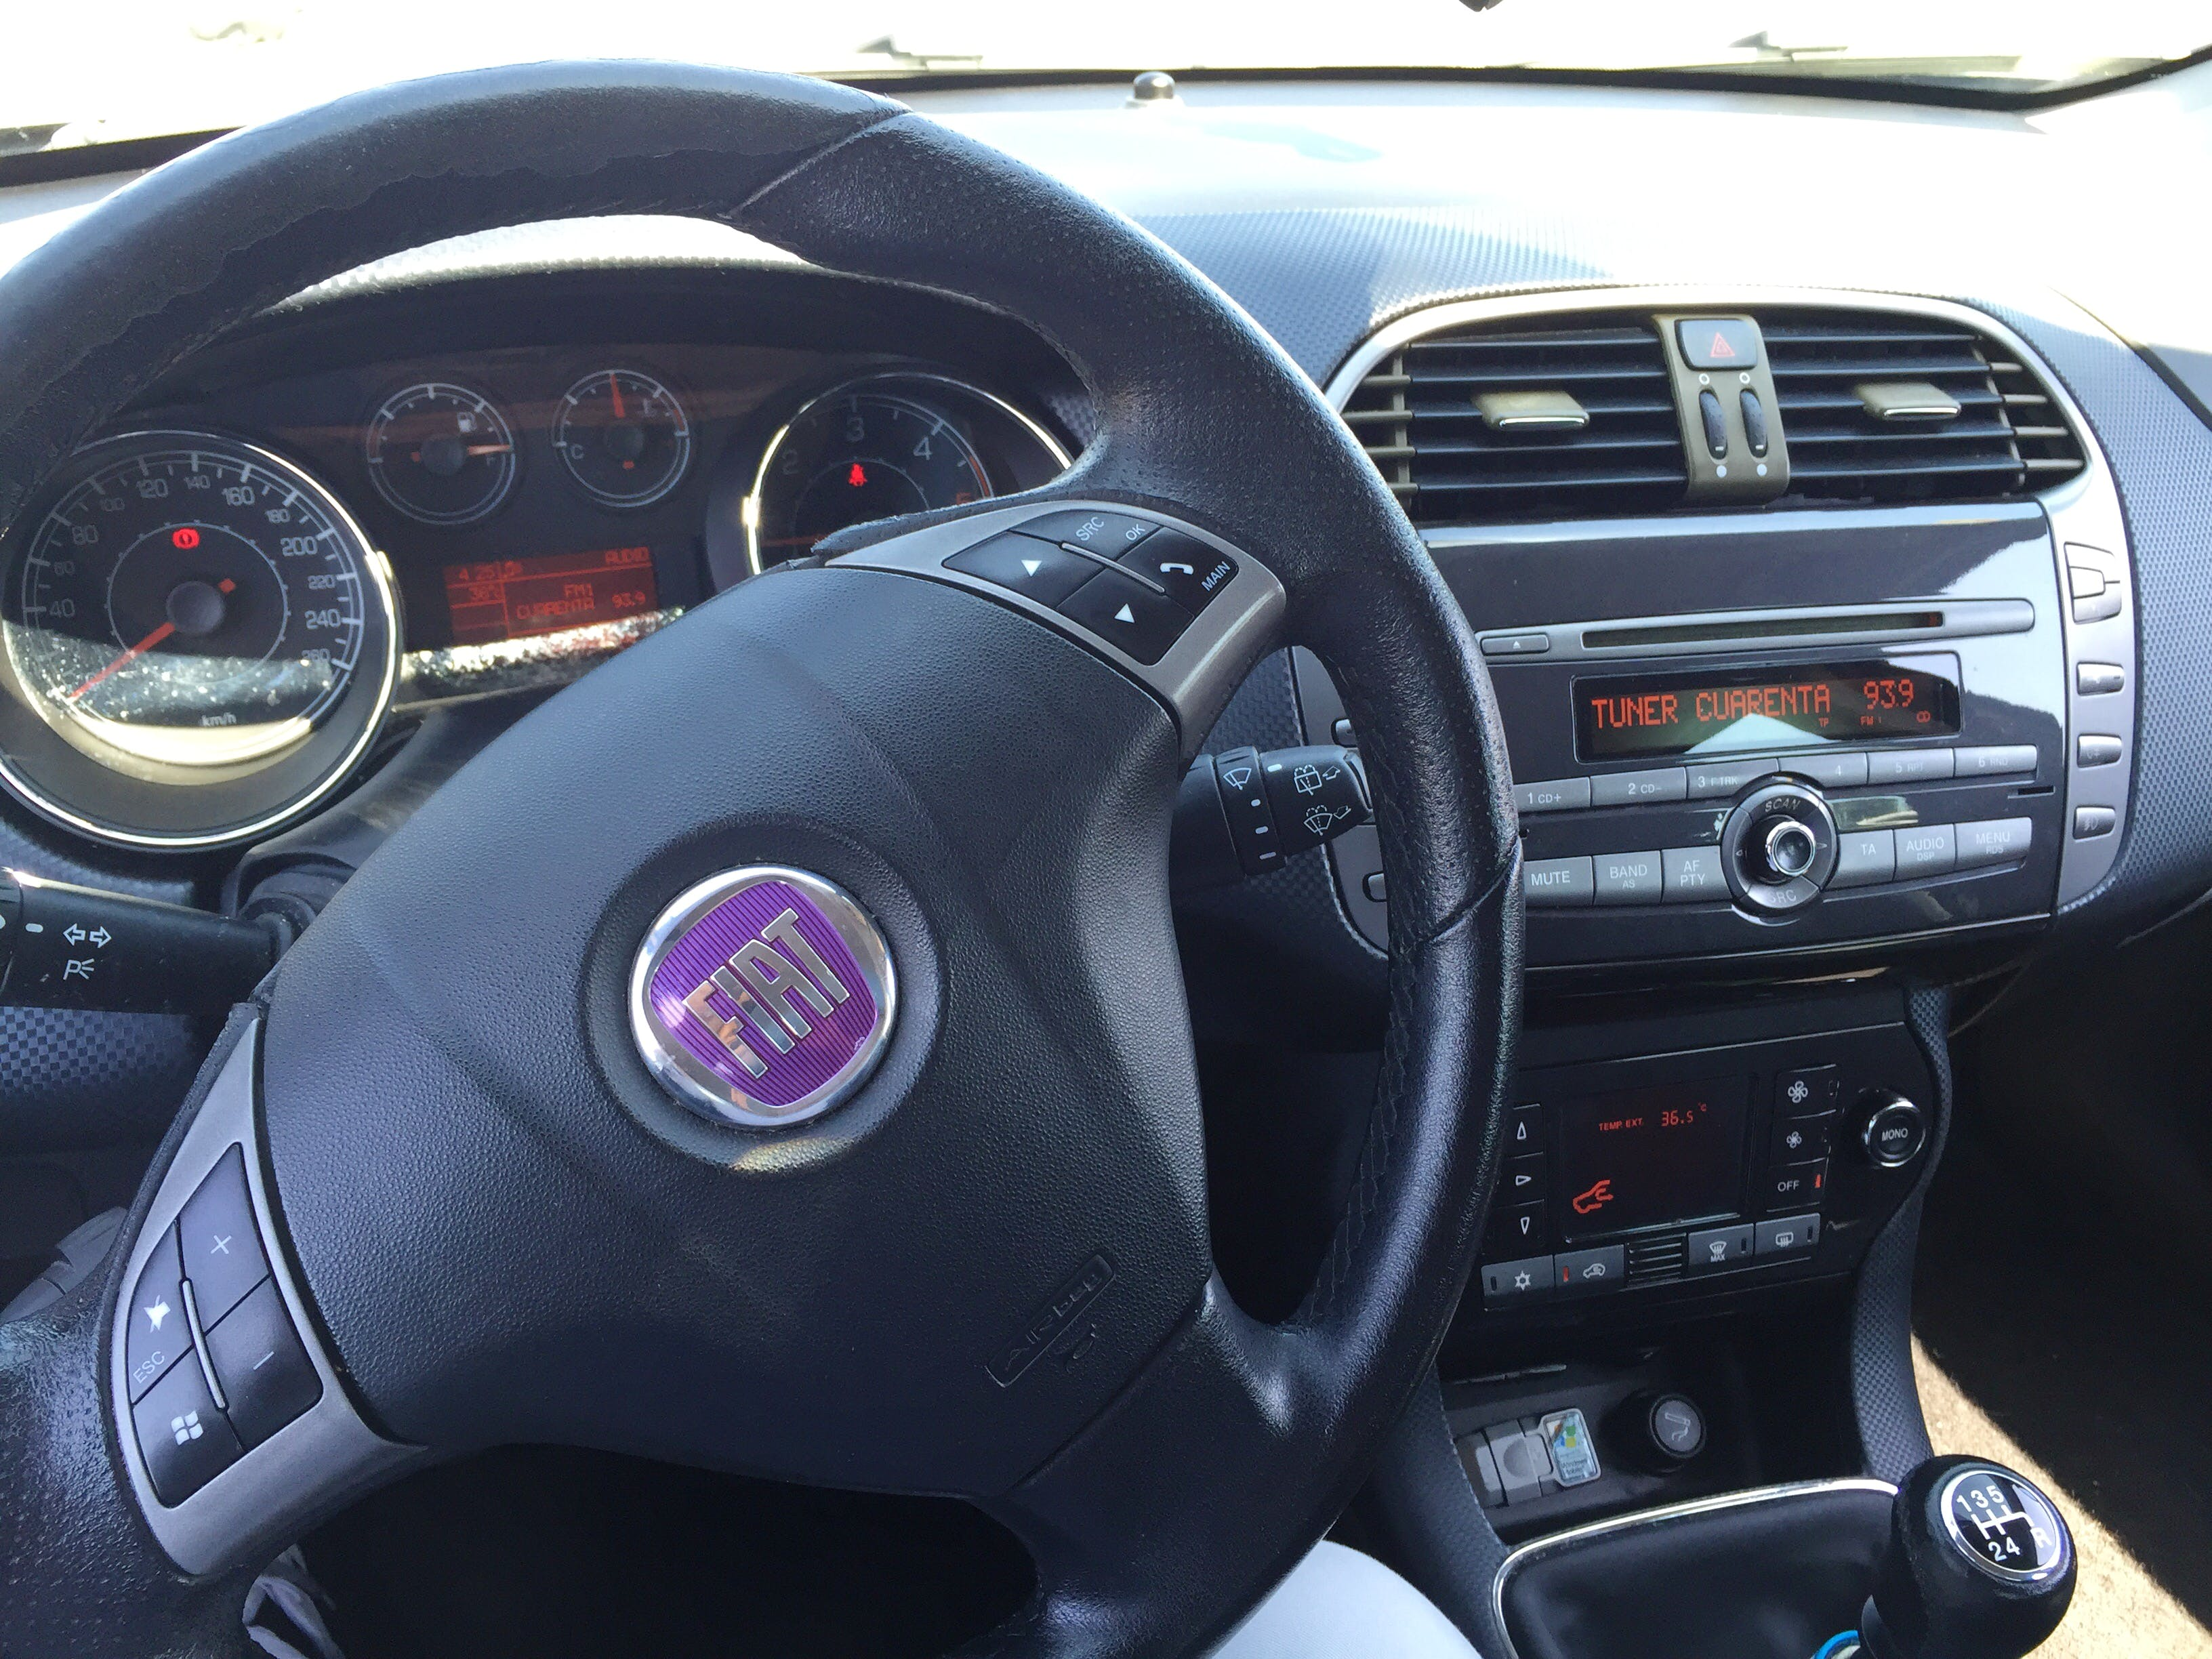 FIAT BRAVO EMOTION 120 CV MULTIJET -NEGRO con Reproductor de CD